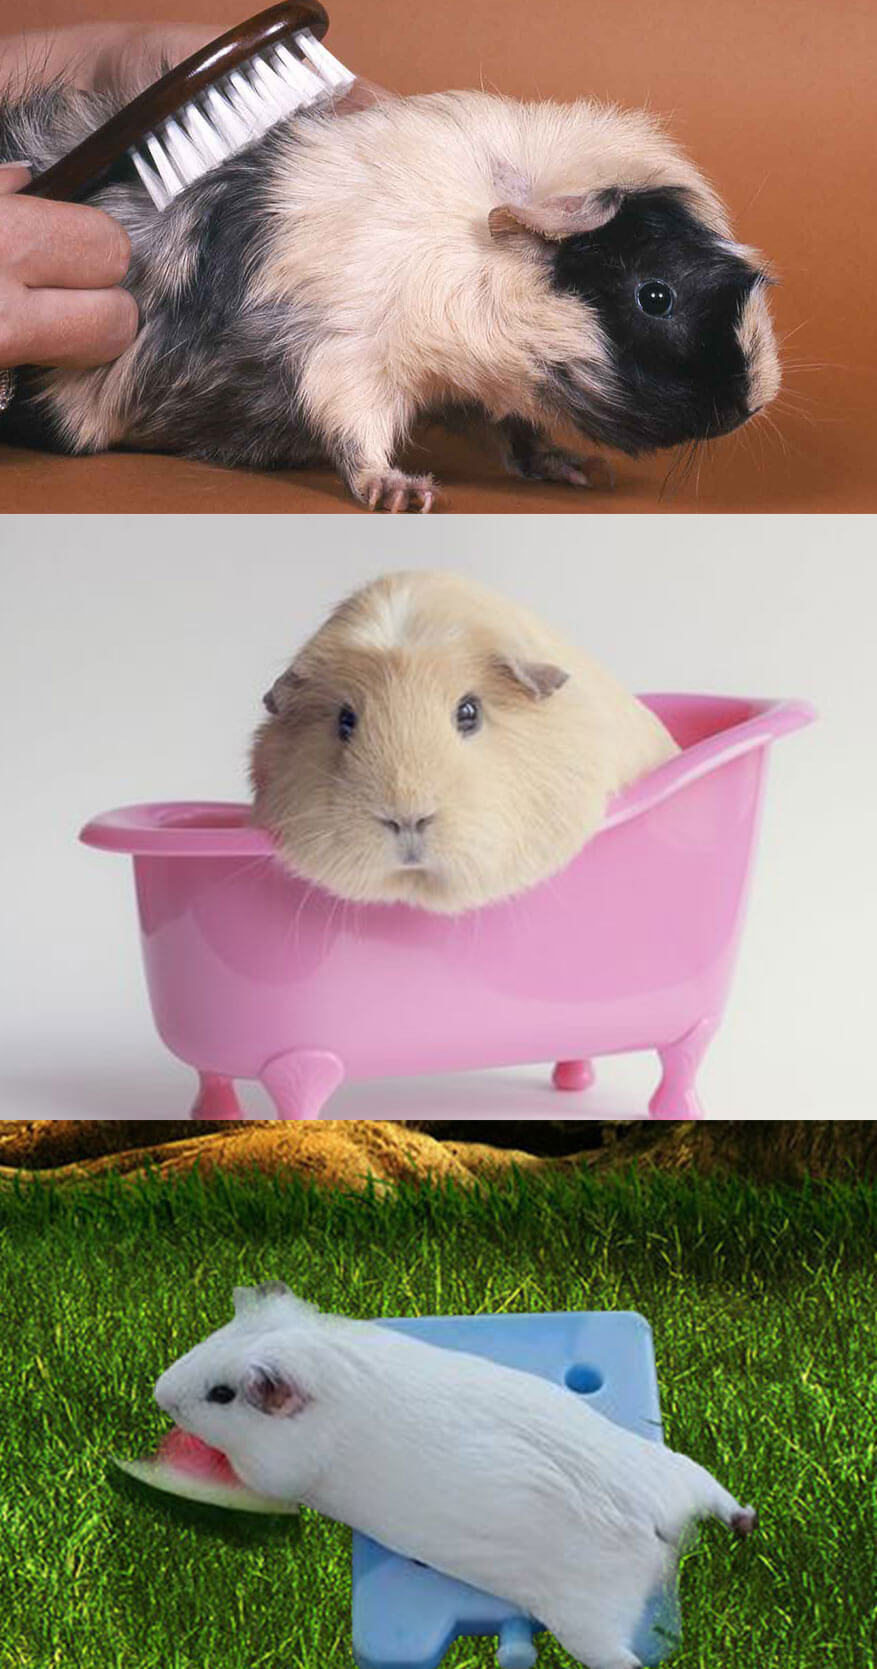 Some Amazing Tips to Take Care of Guinea Pigs in Summer